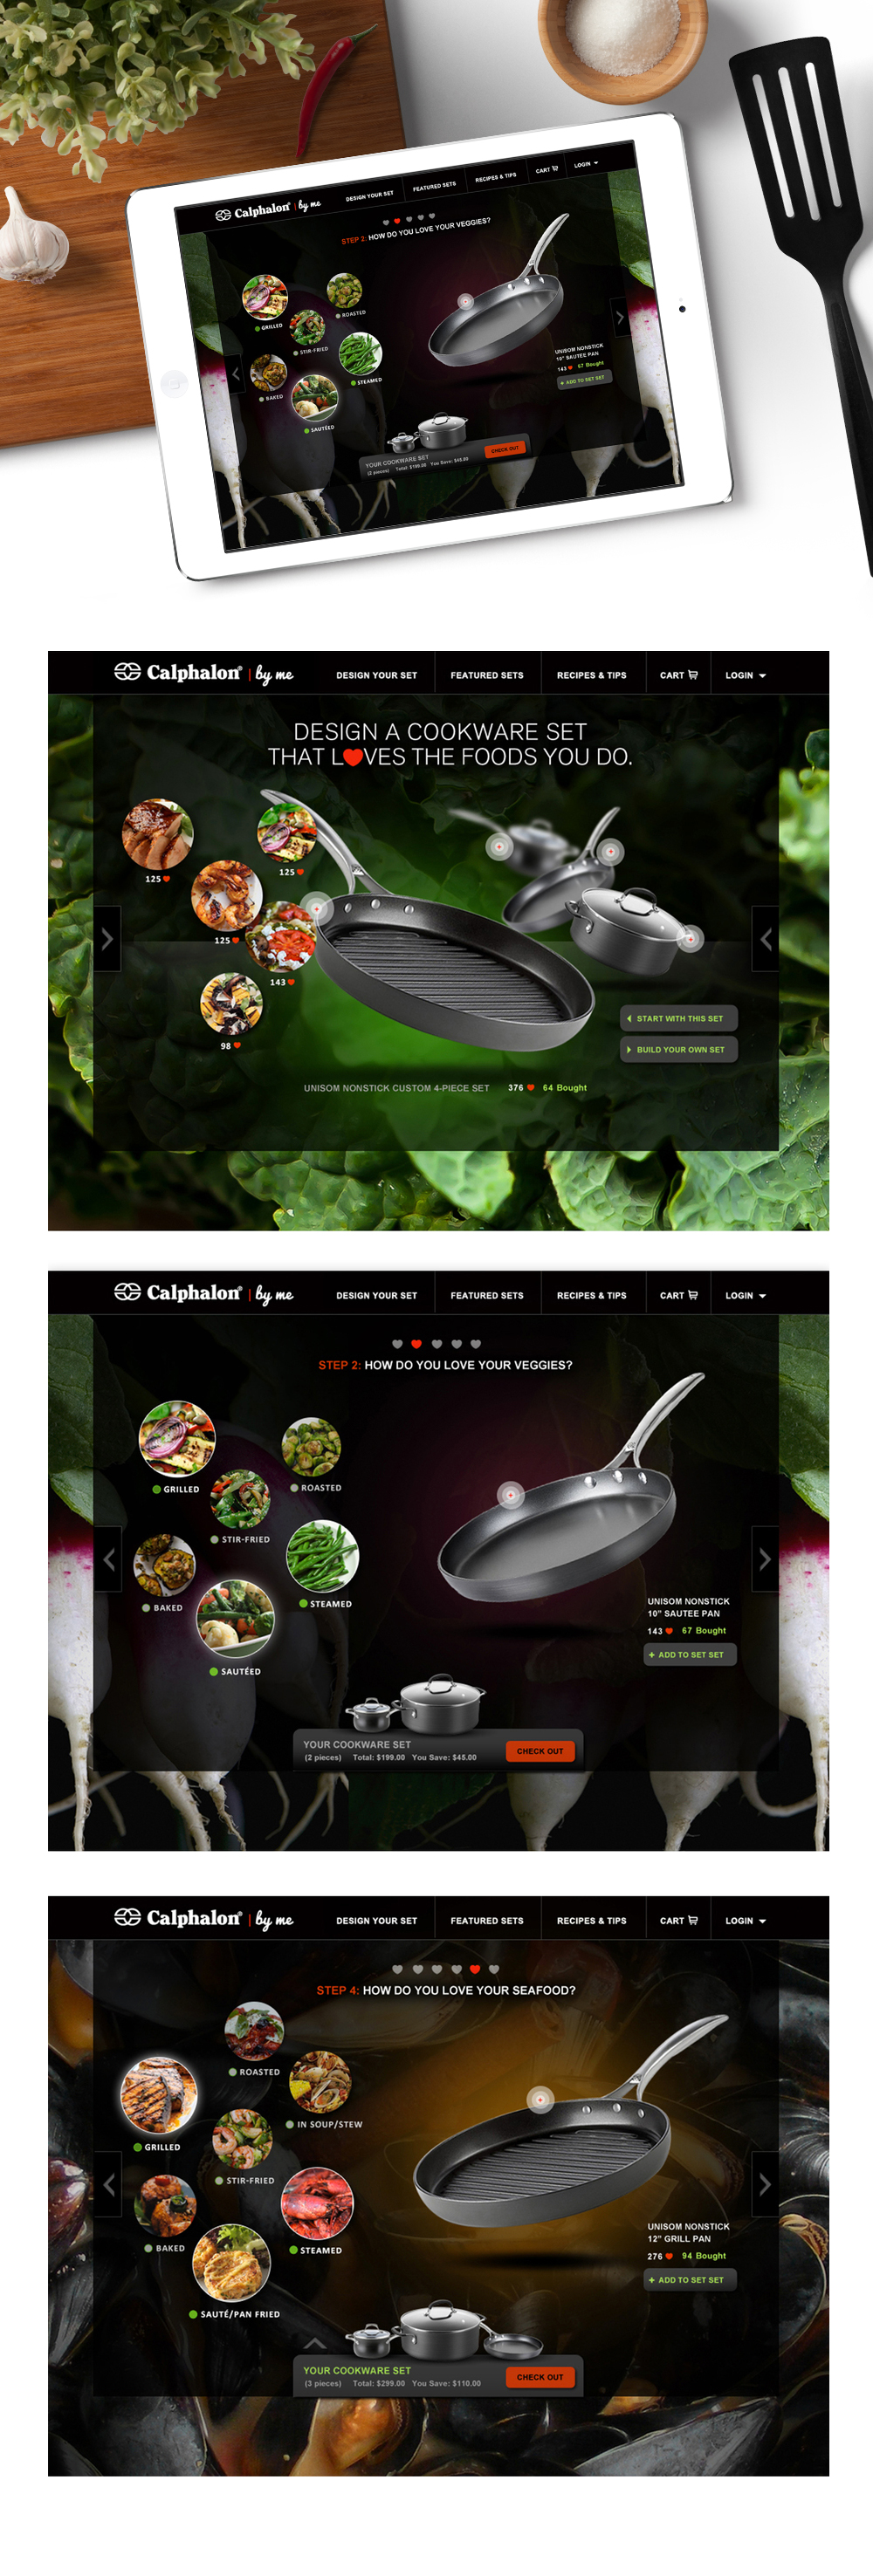 Image Result For Is Calphalon